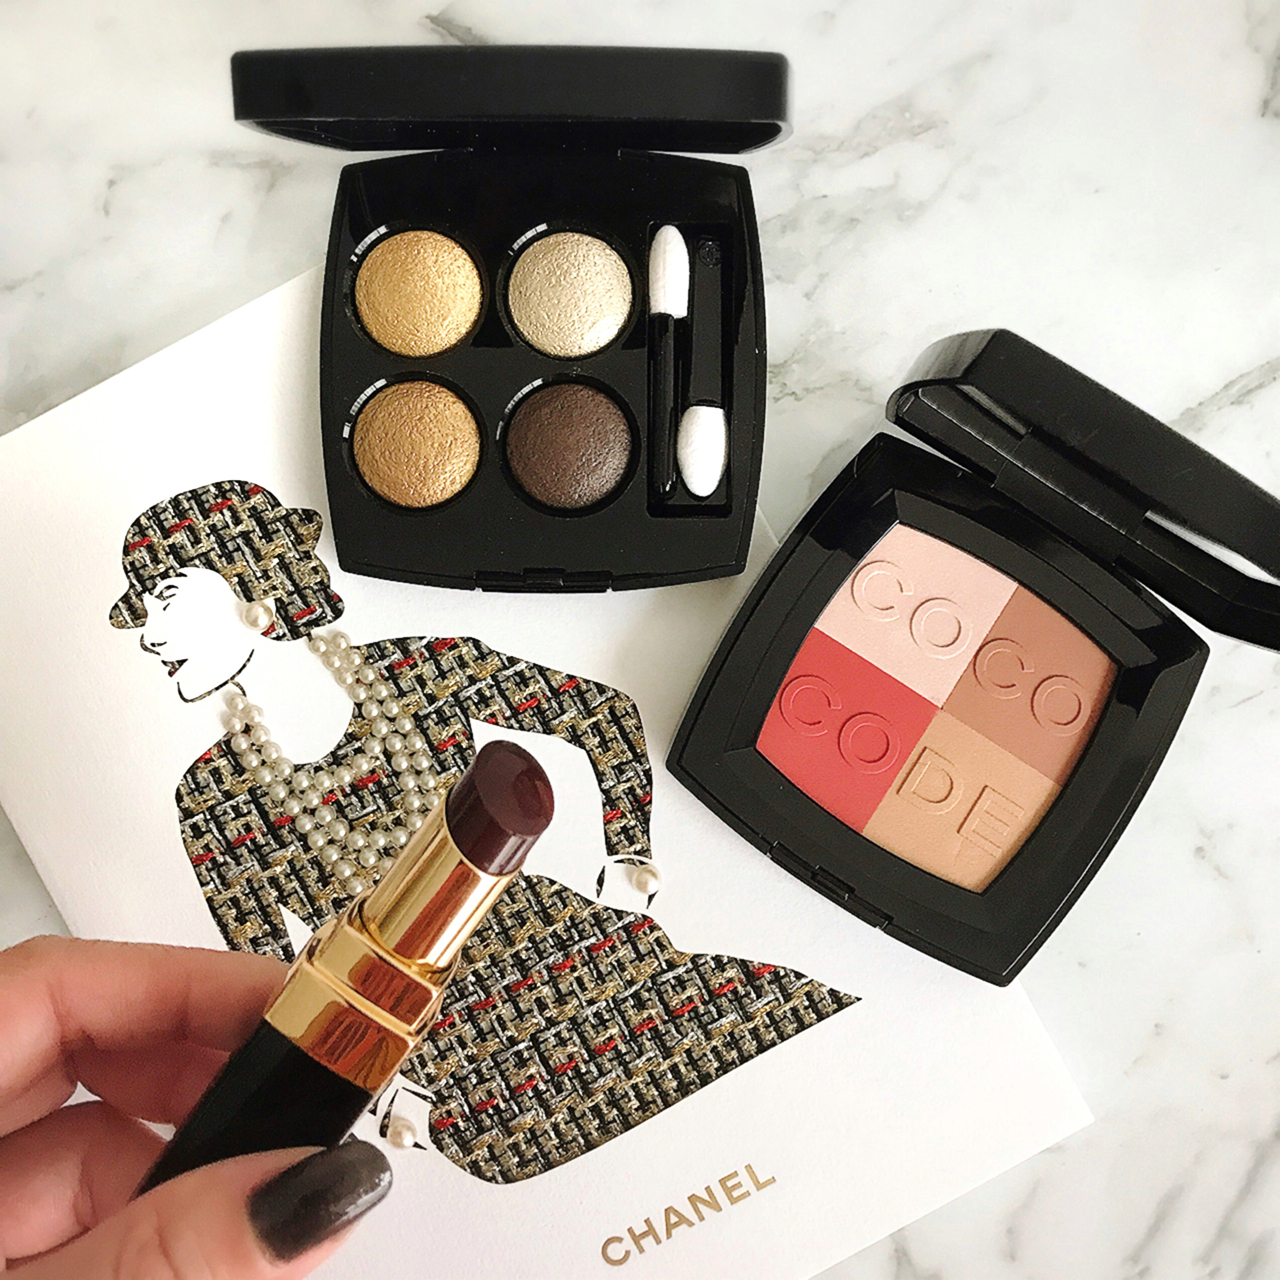 Chanel Coco Code, Les 4 Ombres Code Elegants & Rouge Coco Shine Noir Moderne